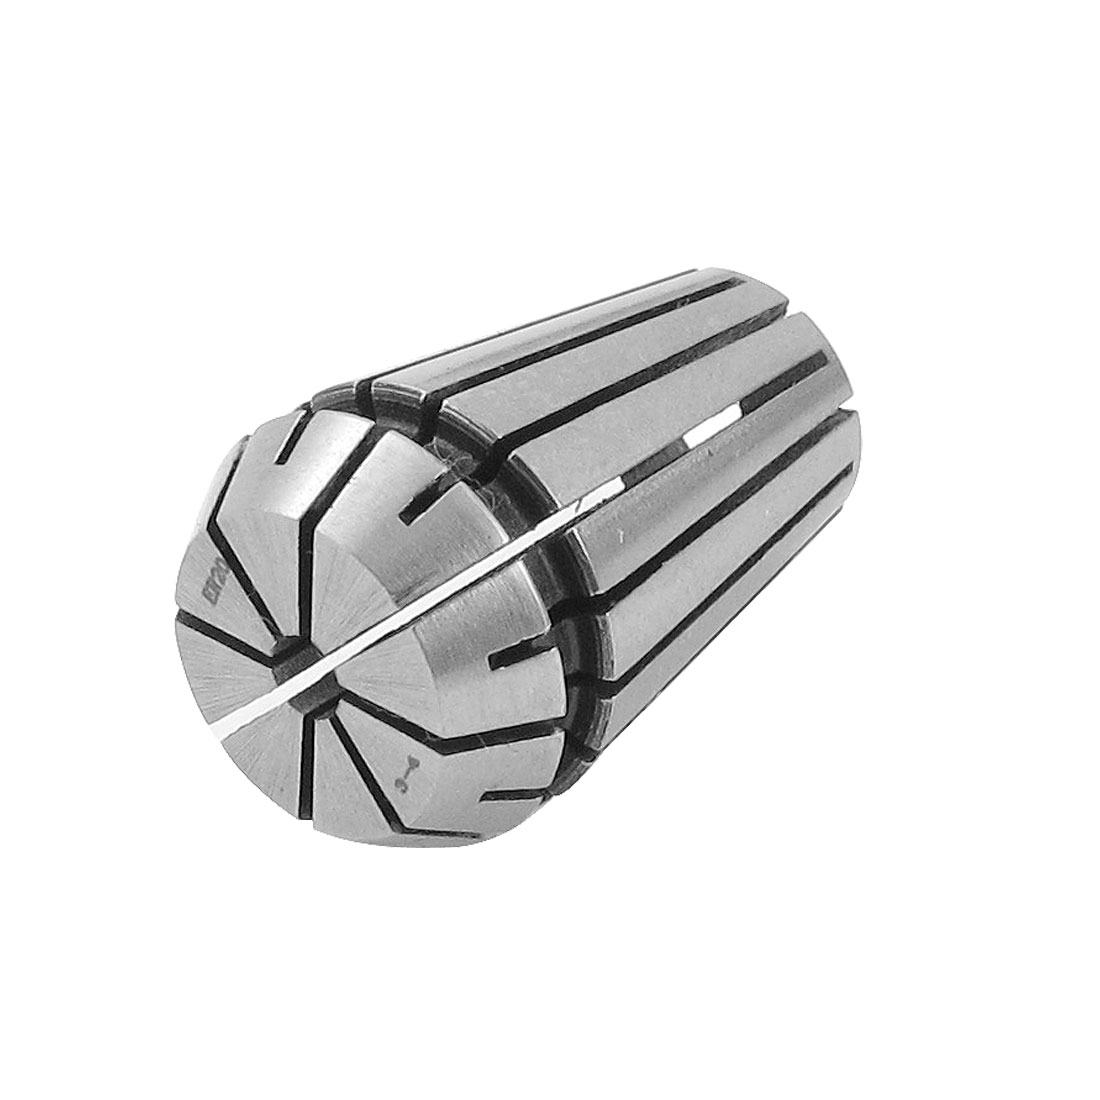 ER20 ER-20 3mm-4mm Stainless Steel CNC Milling Spring Collet